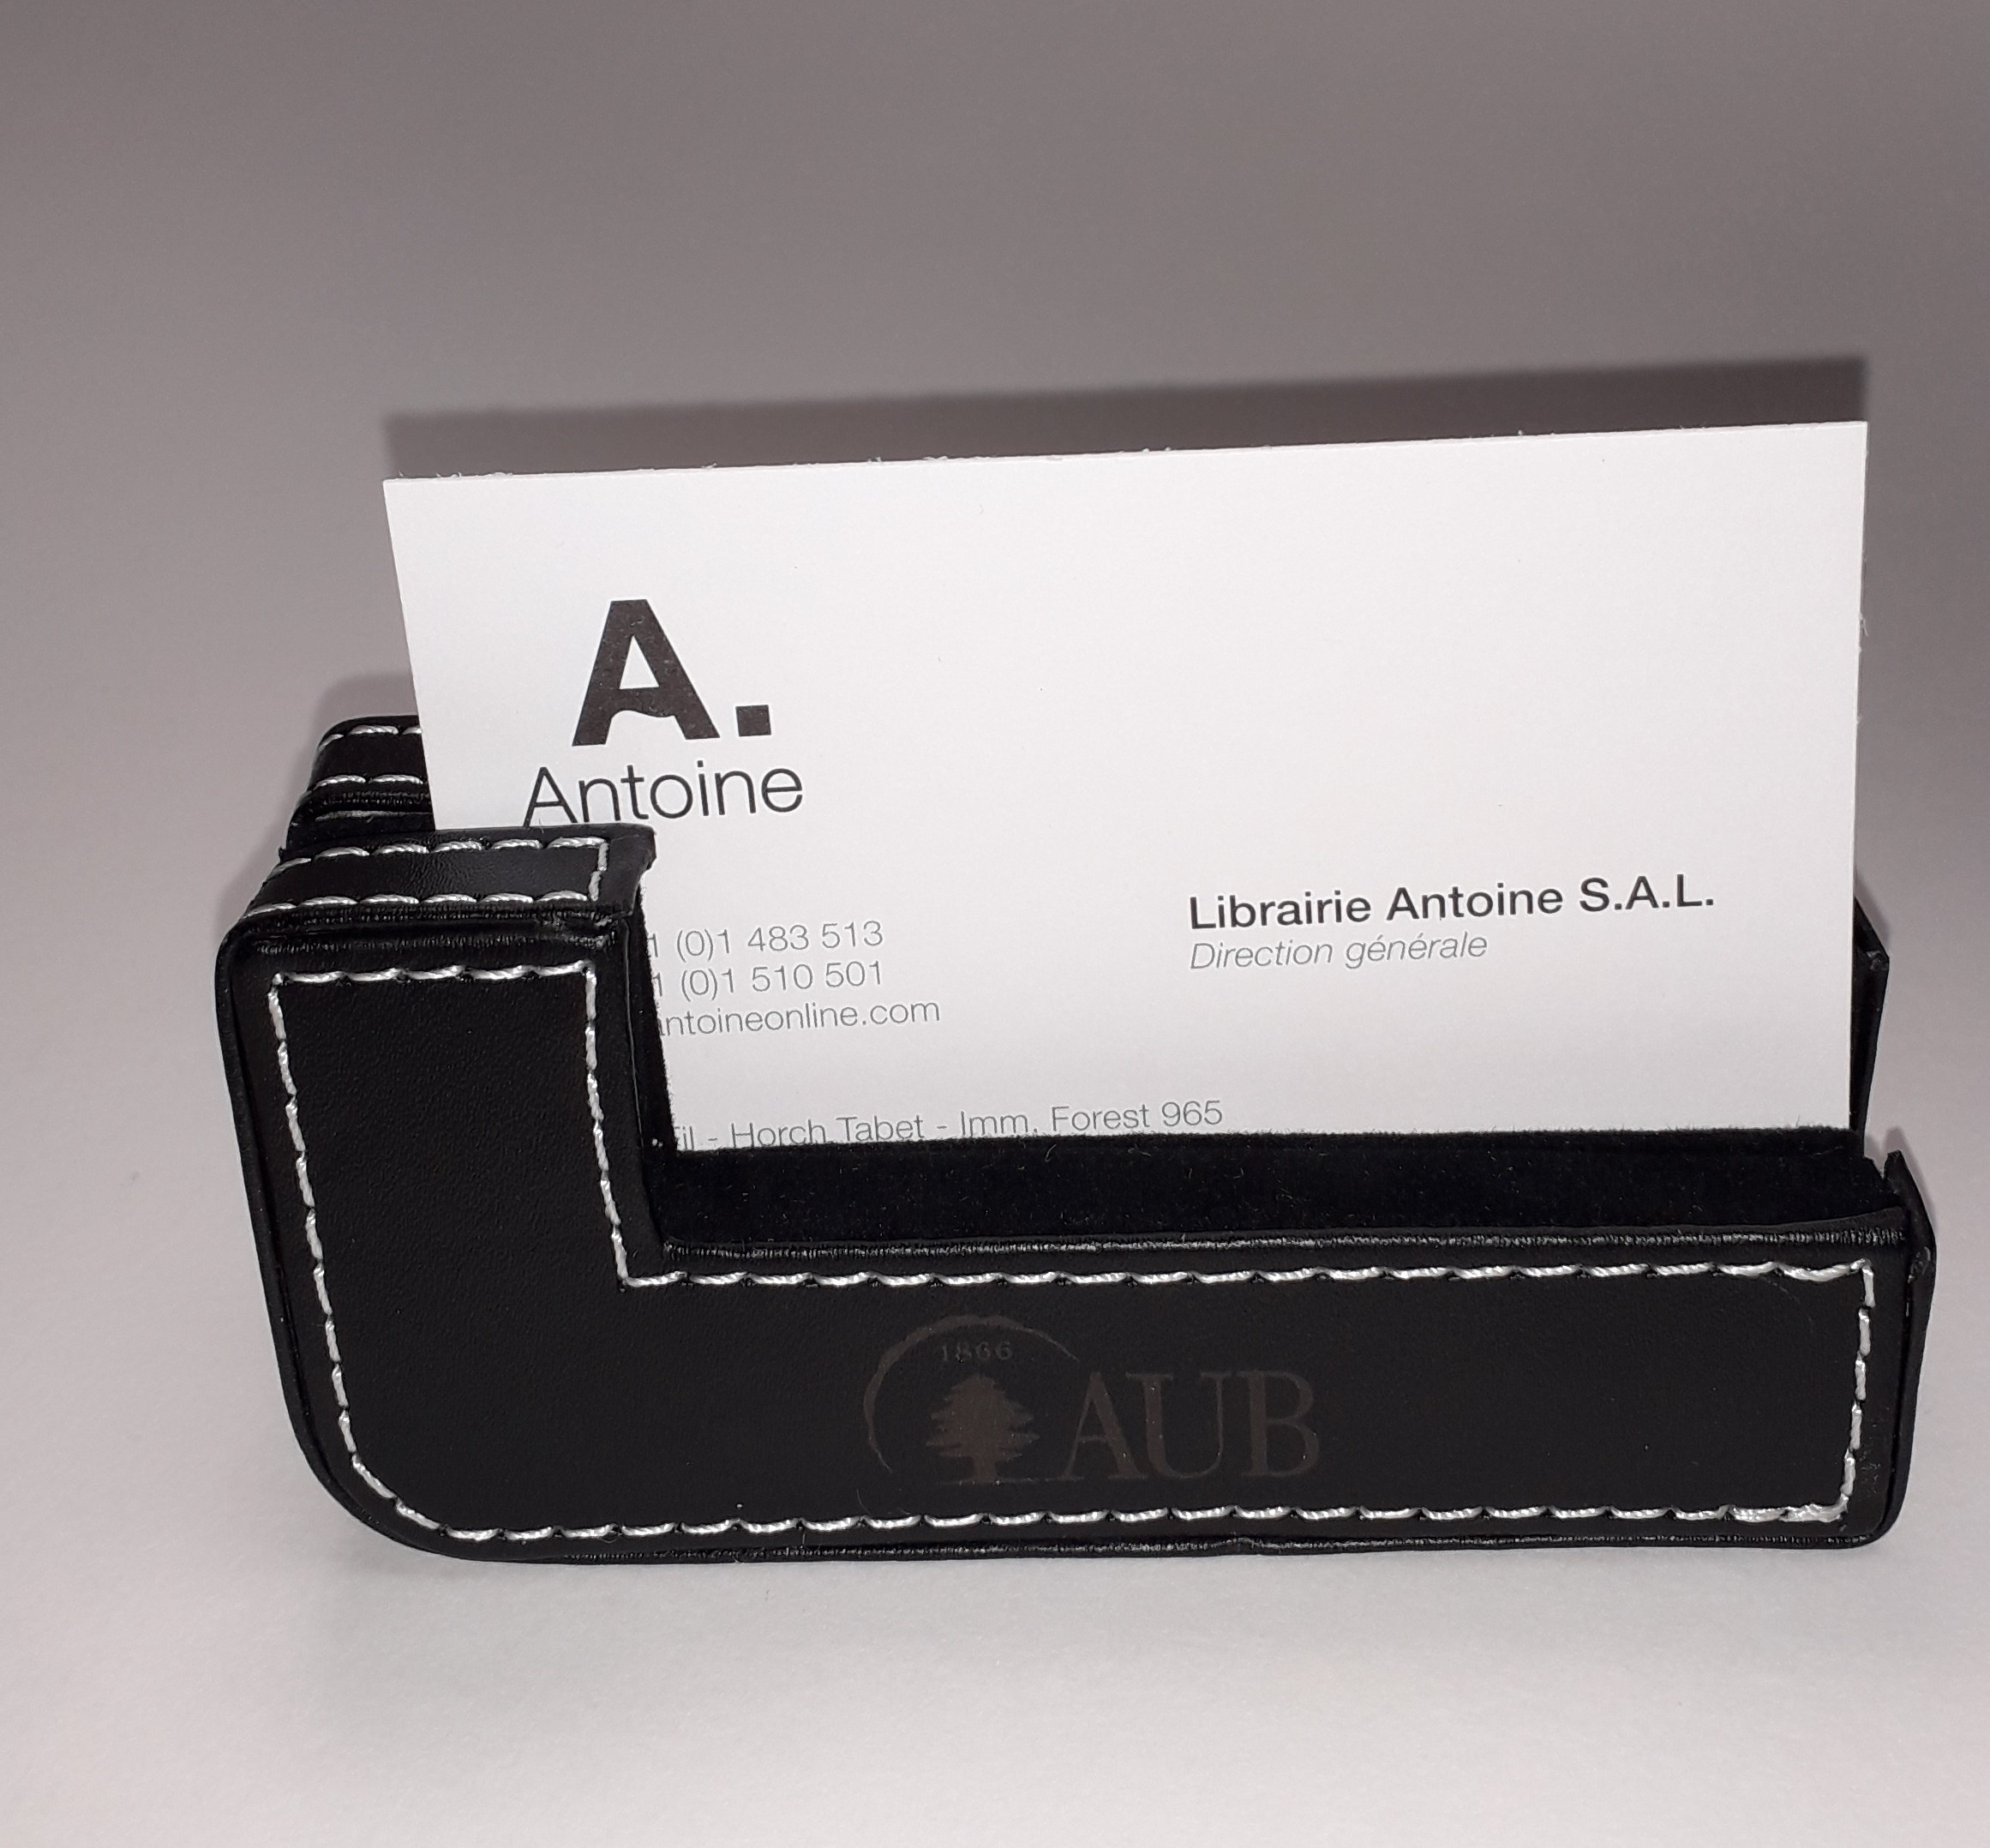 AUB Desk Card Holder Black